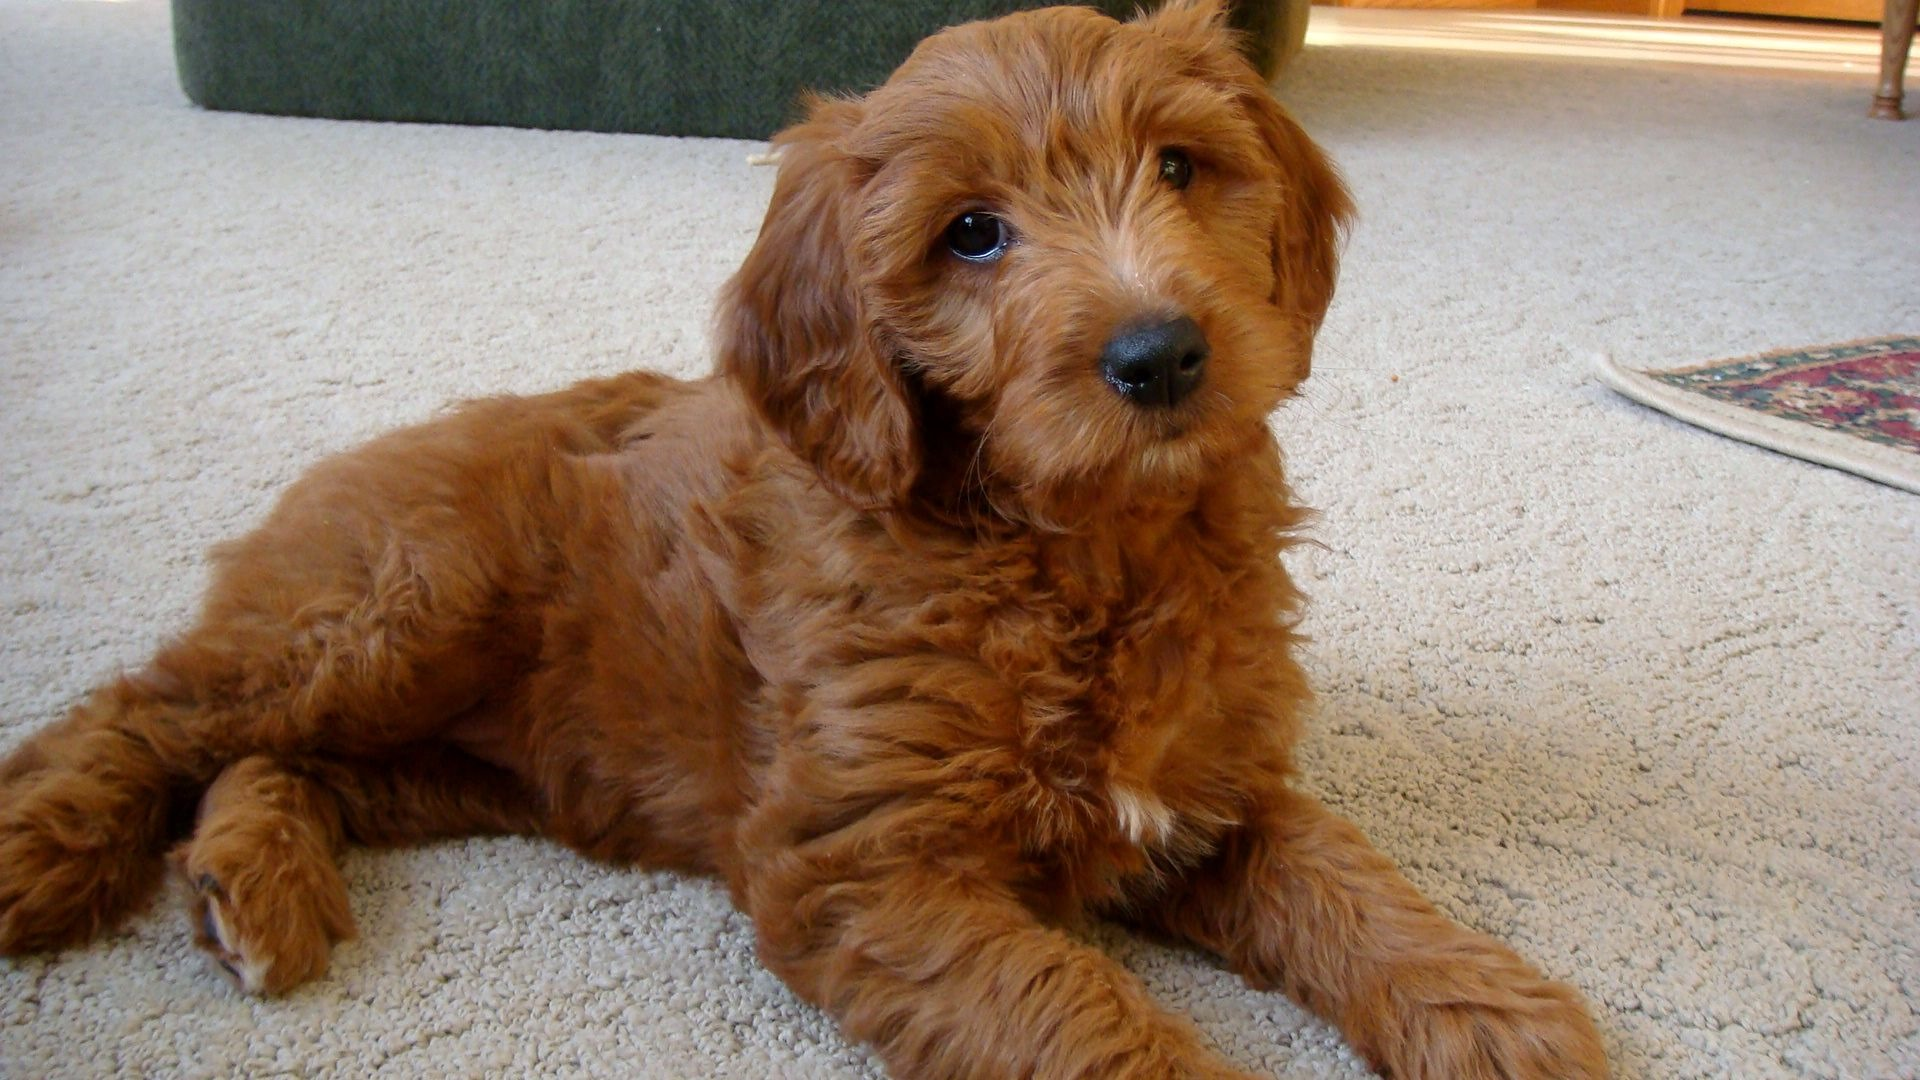 This entry was posted in Golden Retriever Mix   Poodle Mix   Bookmark    F1b Apricot Goldendoodle